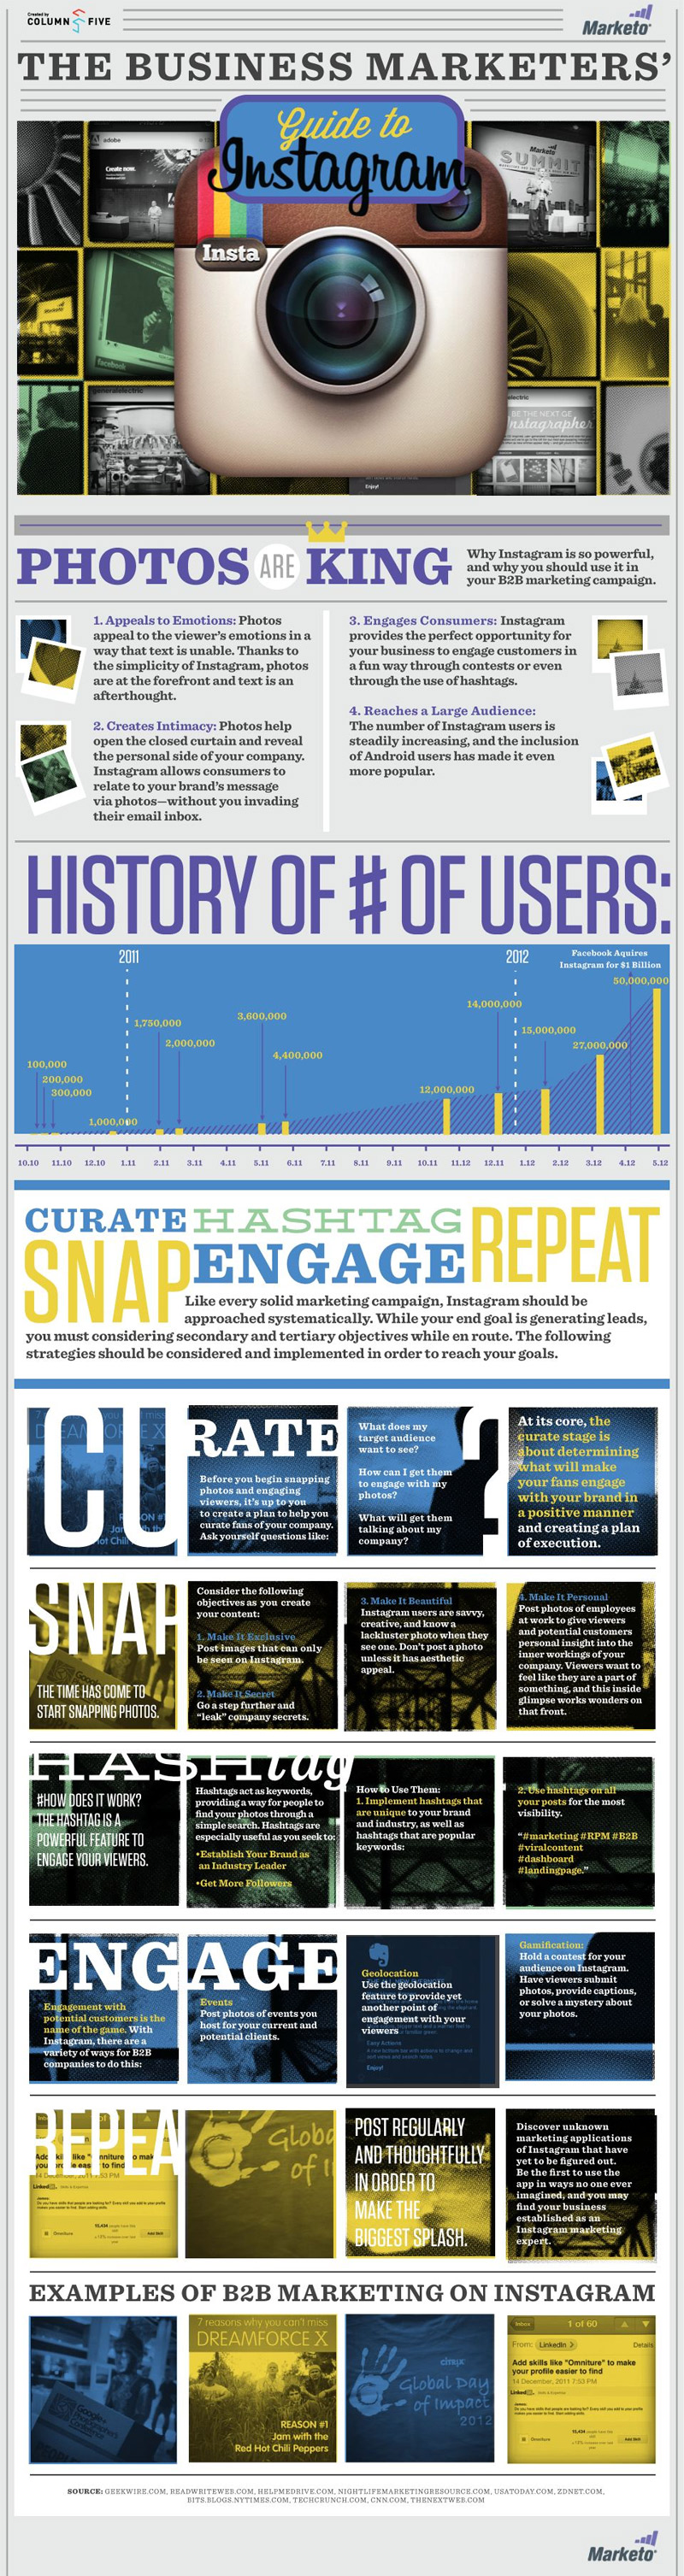 Instagram-Marketing-Tips-Infographic